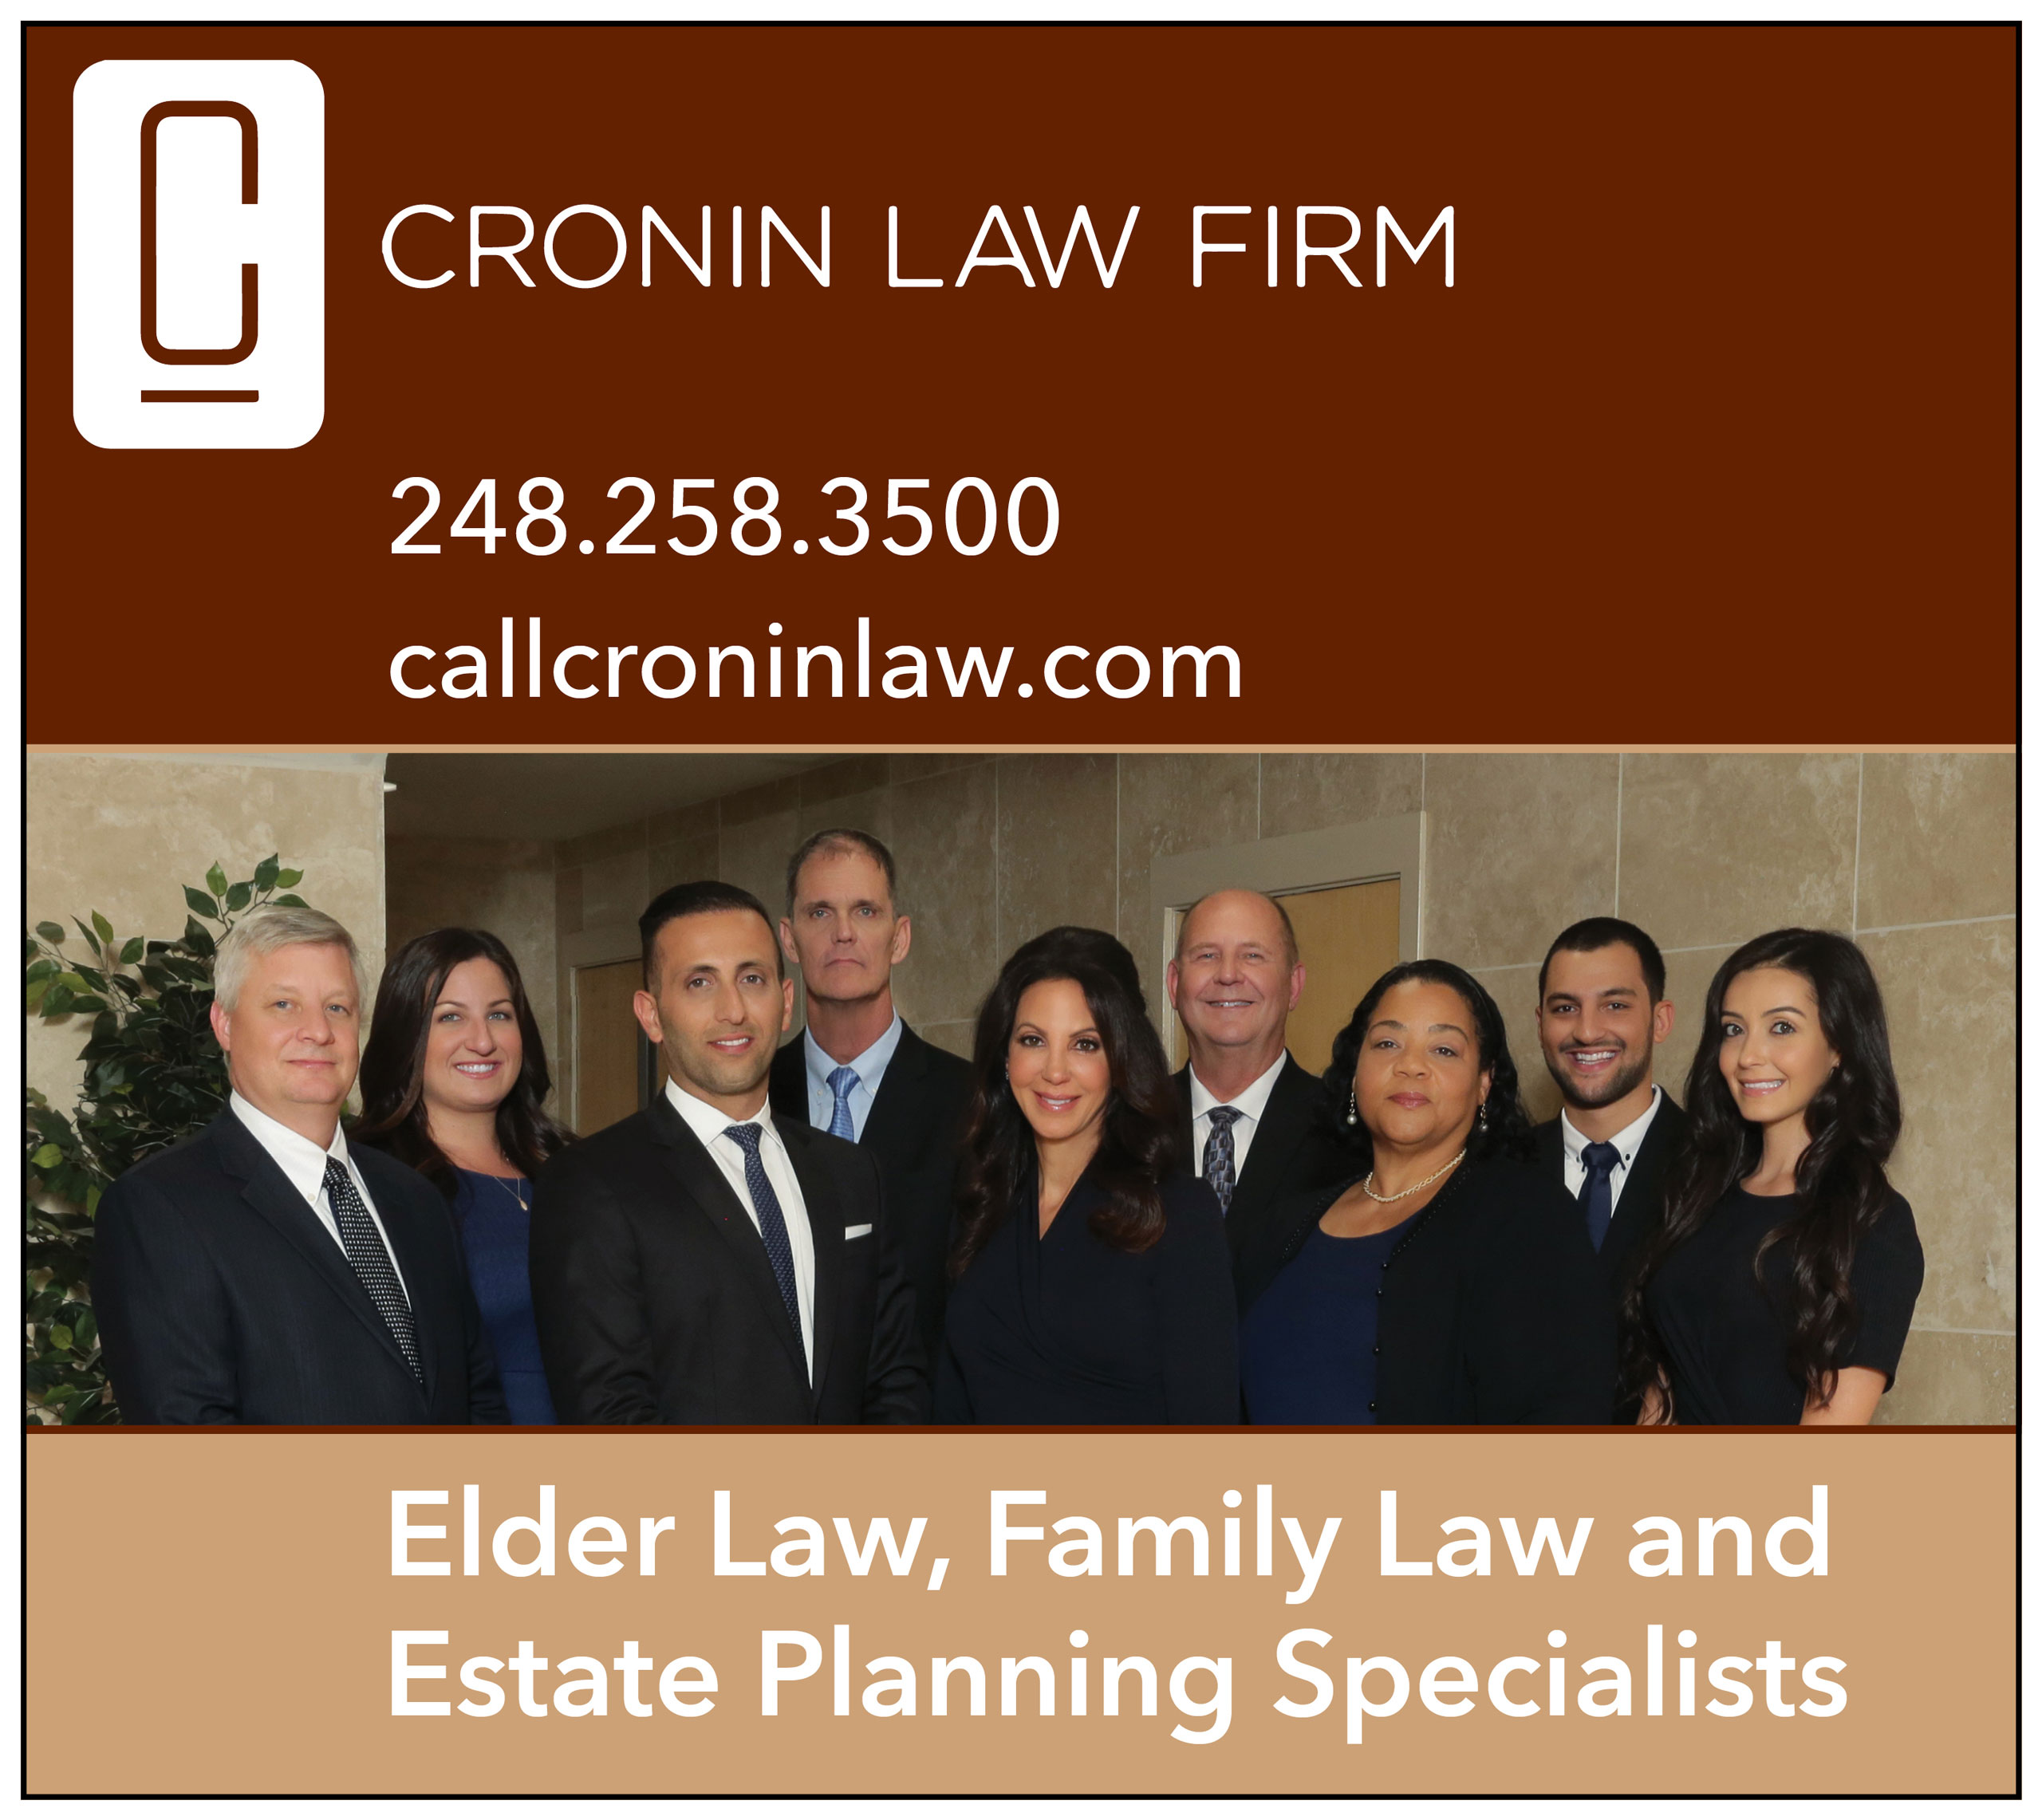 Cronin Law